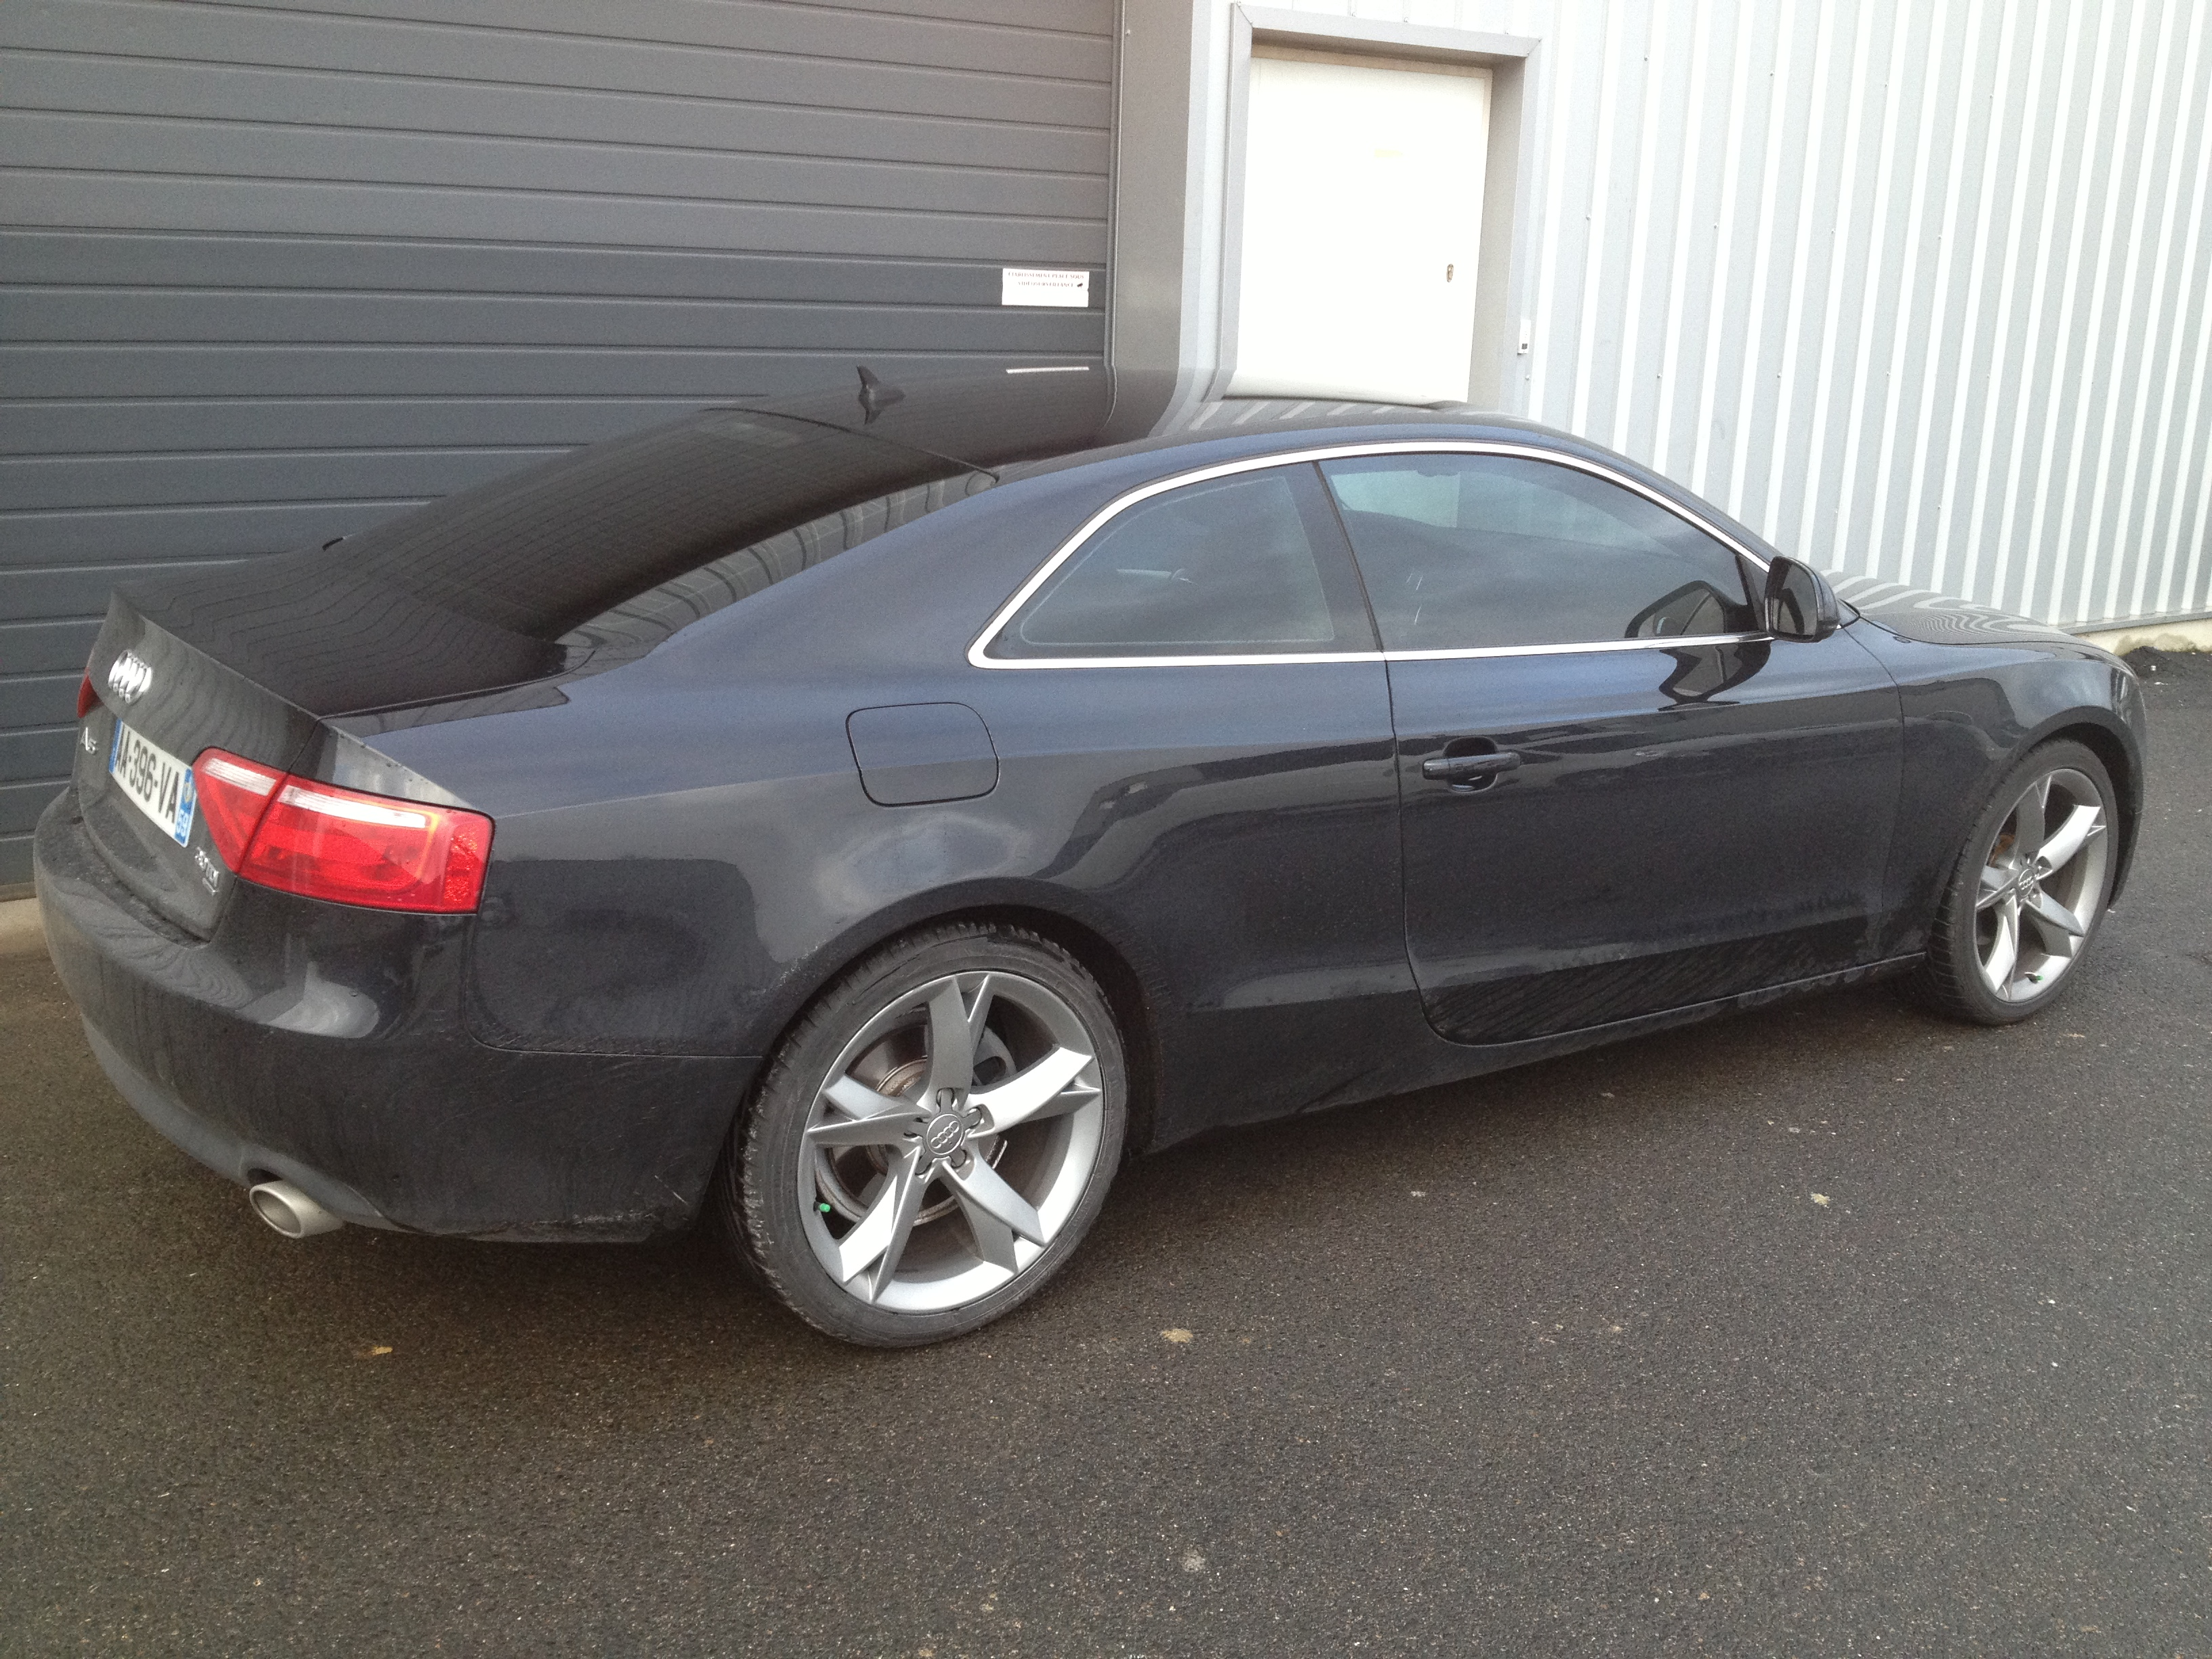 reprogrammation moteur audi a5 3 0 tdi 240 a 300 cv digiservices paris sud. Black Bedroom Furniture Sets. Home Design Ideas